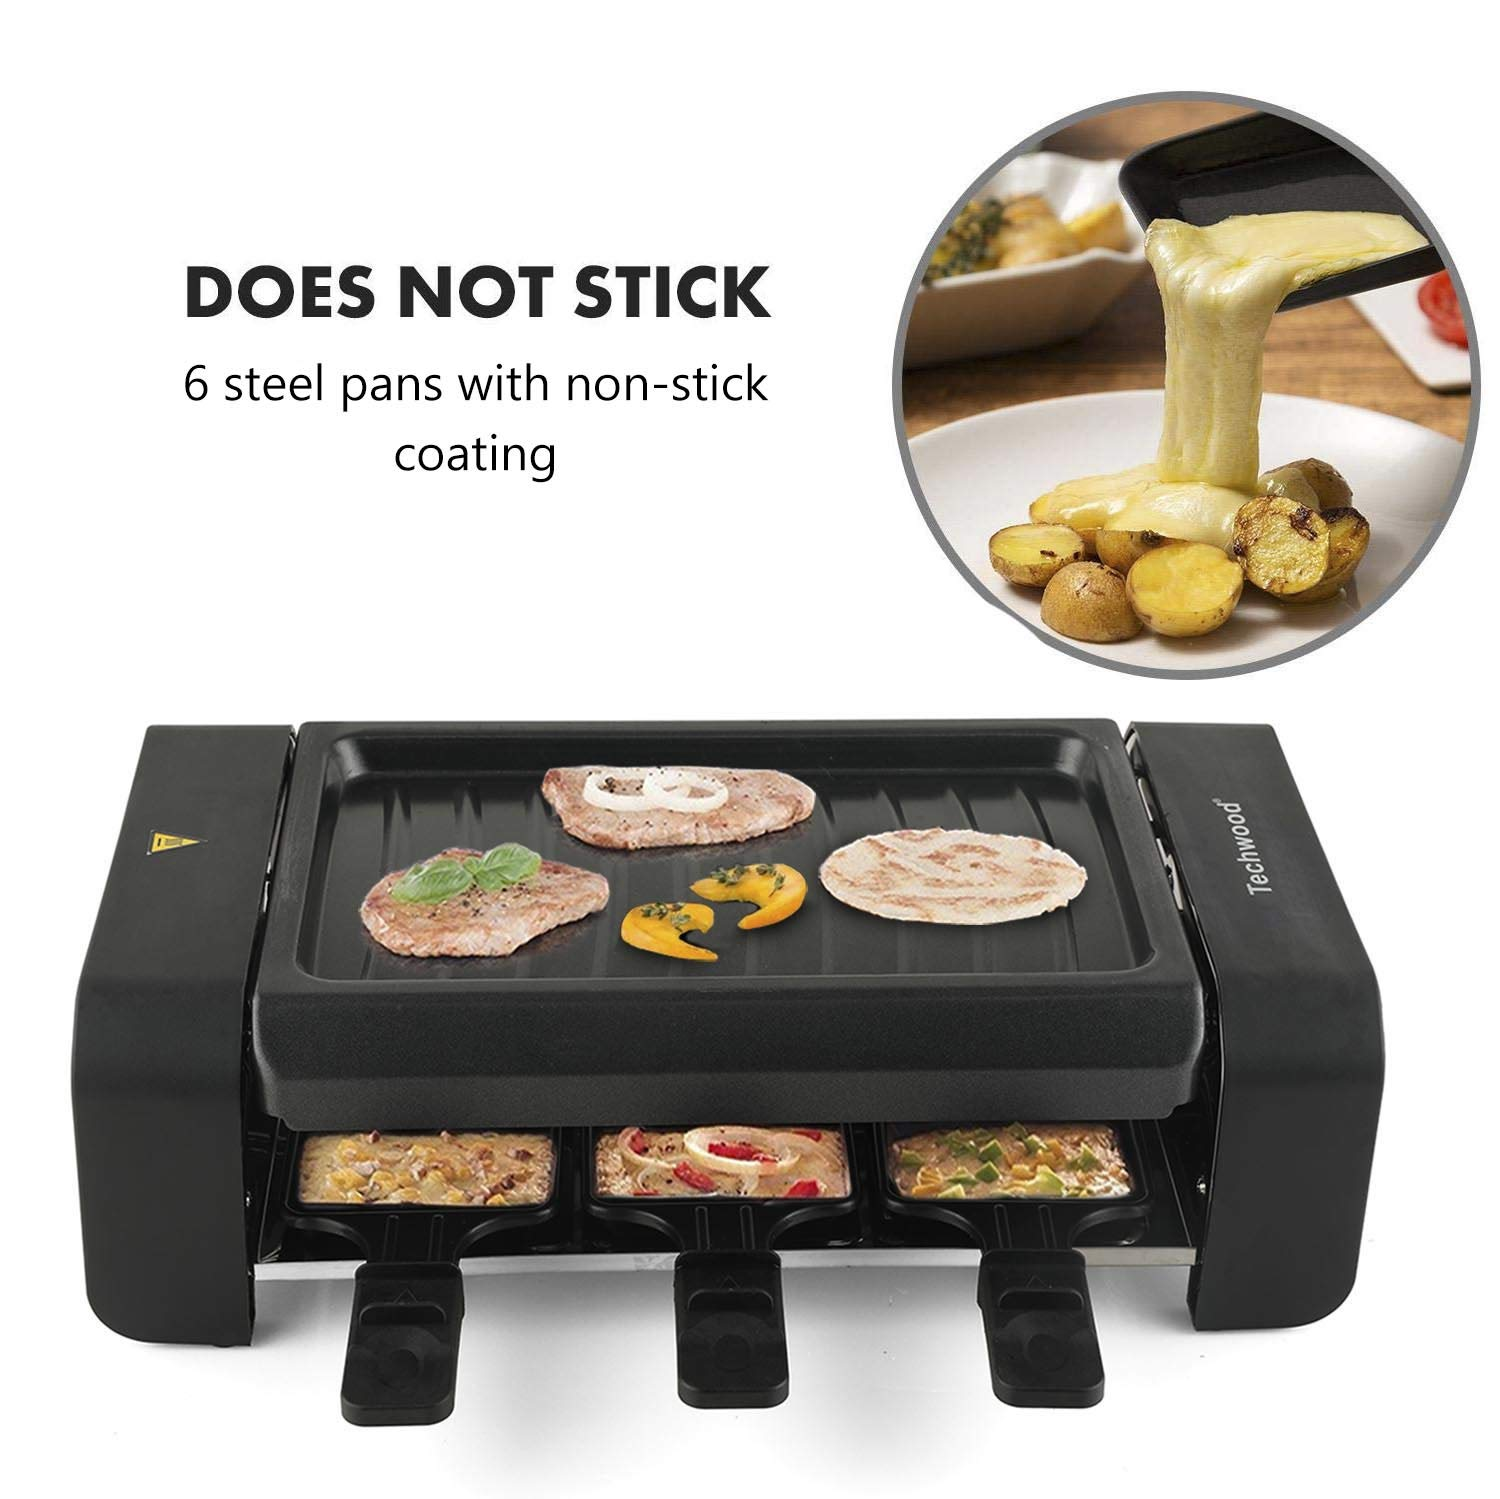 Techwood Raclette Grill Electric Tabletop Raclette Grill Raclette Party Grill 900W Adjustable Temperature Knob Non-Stick Grilling Surface Compact Easy Clean